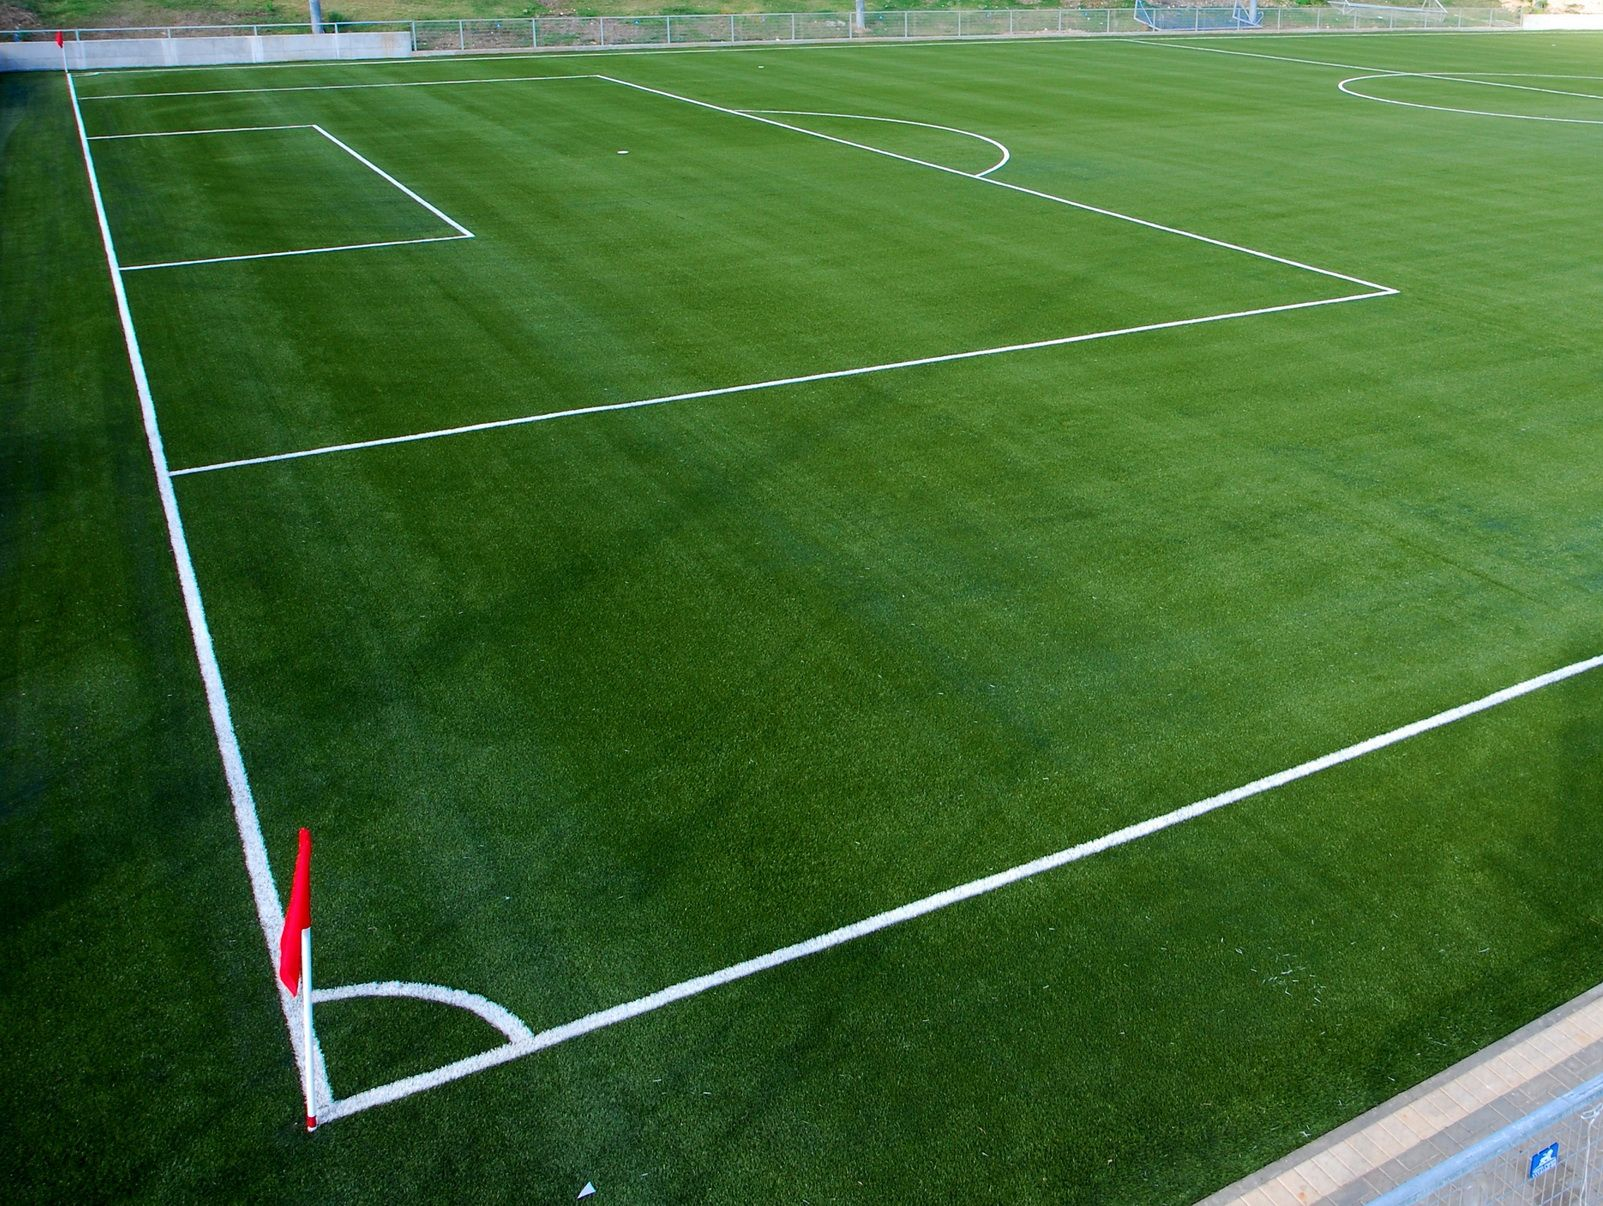 New synthetic soccer field for Pierrefonds Roxboro